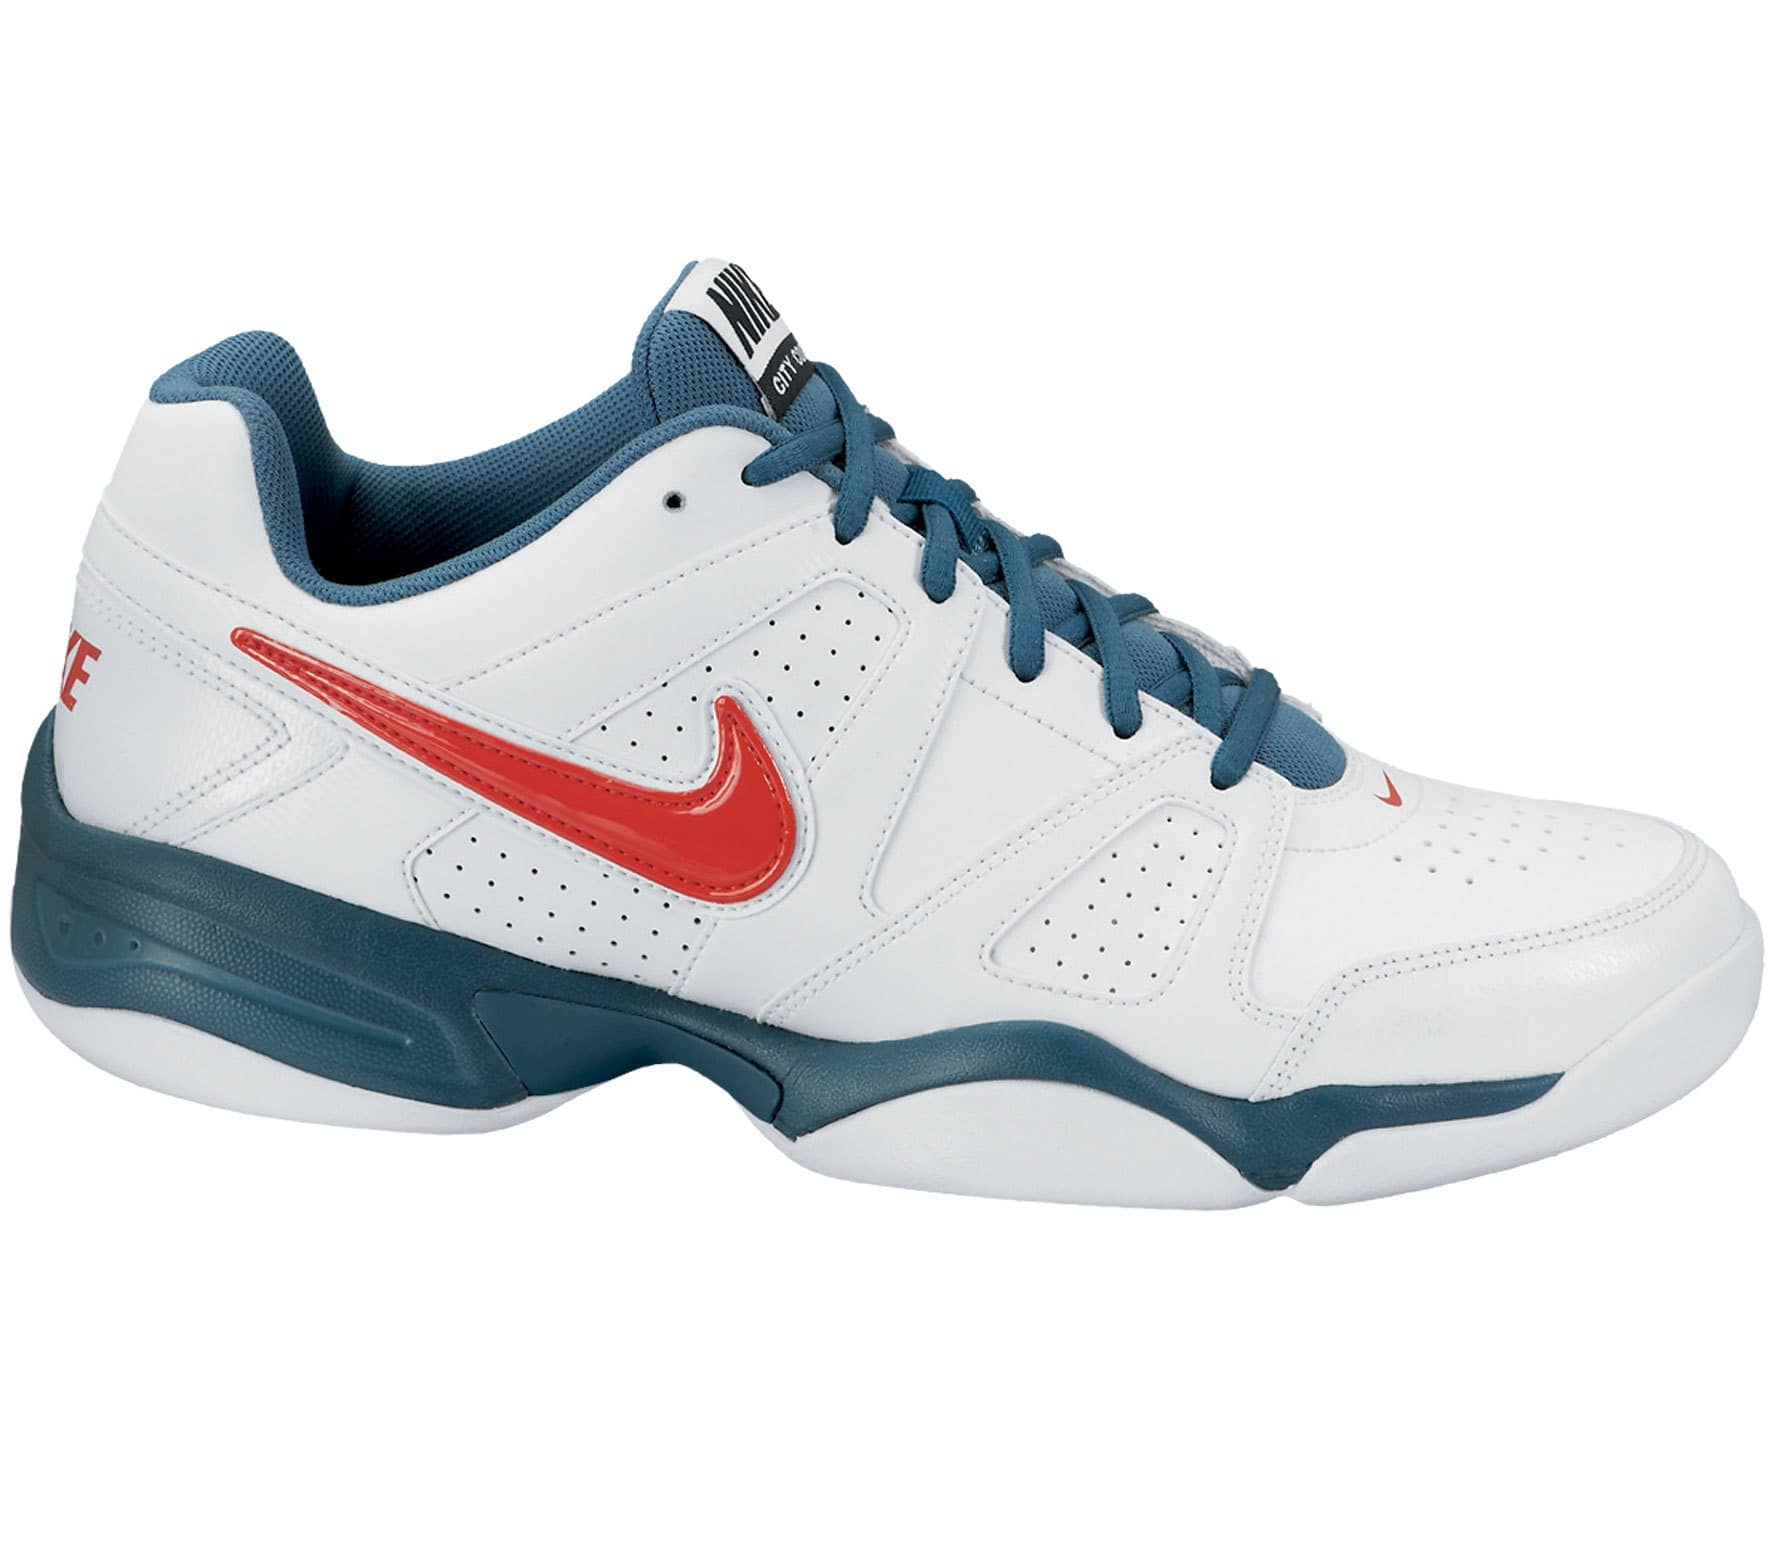 size 40 28ac9 24c8a Nike - City Court VII Indoor men s tennis shoes (wei